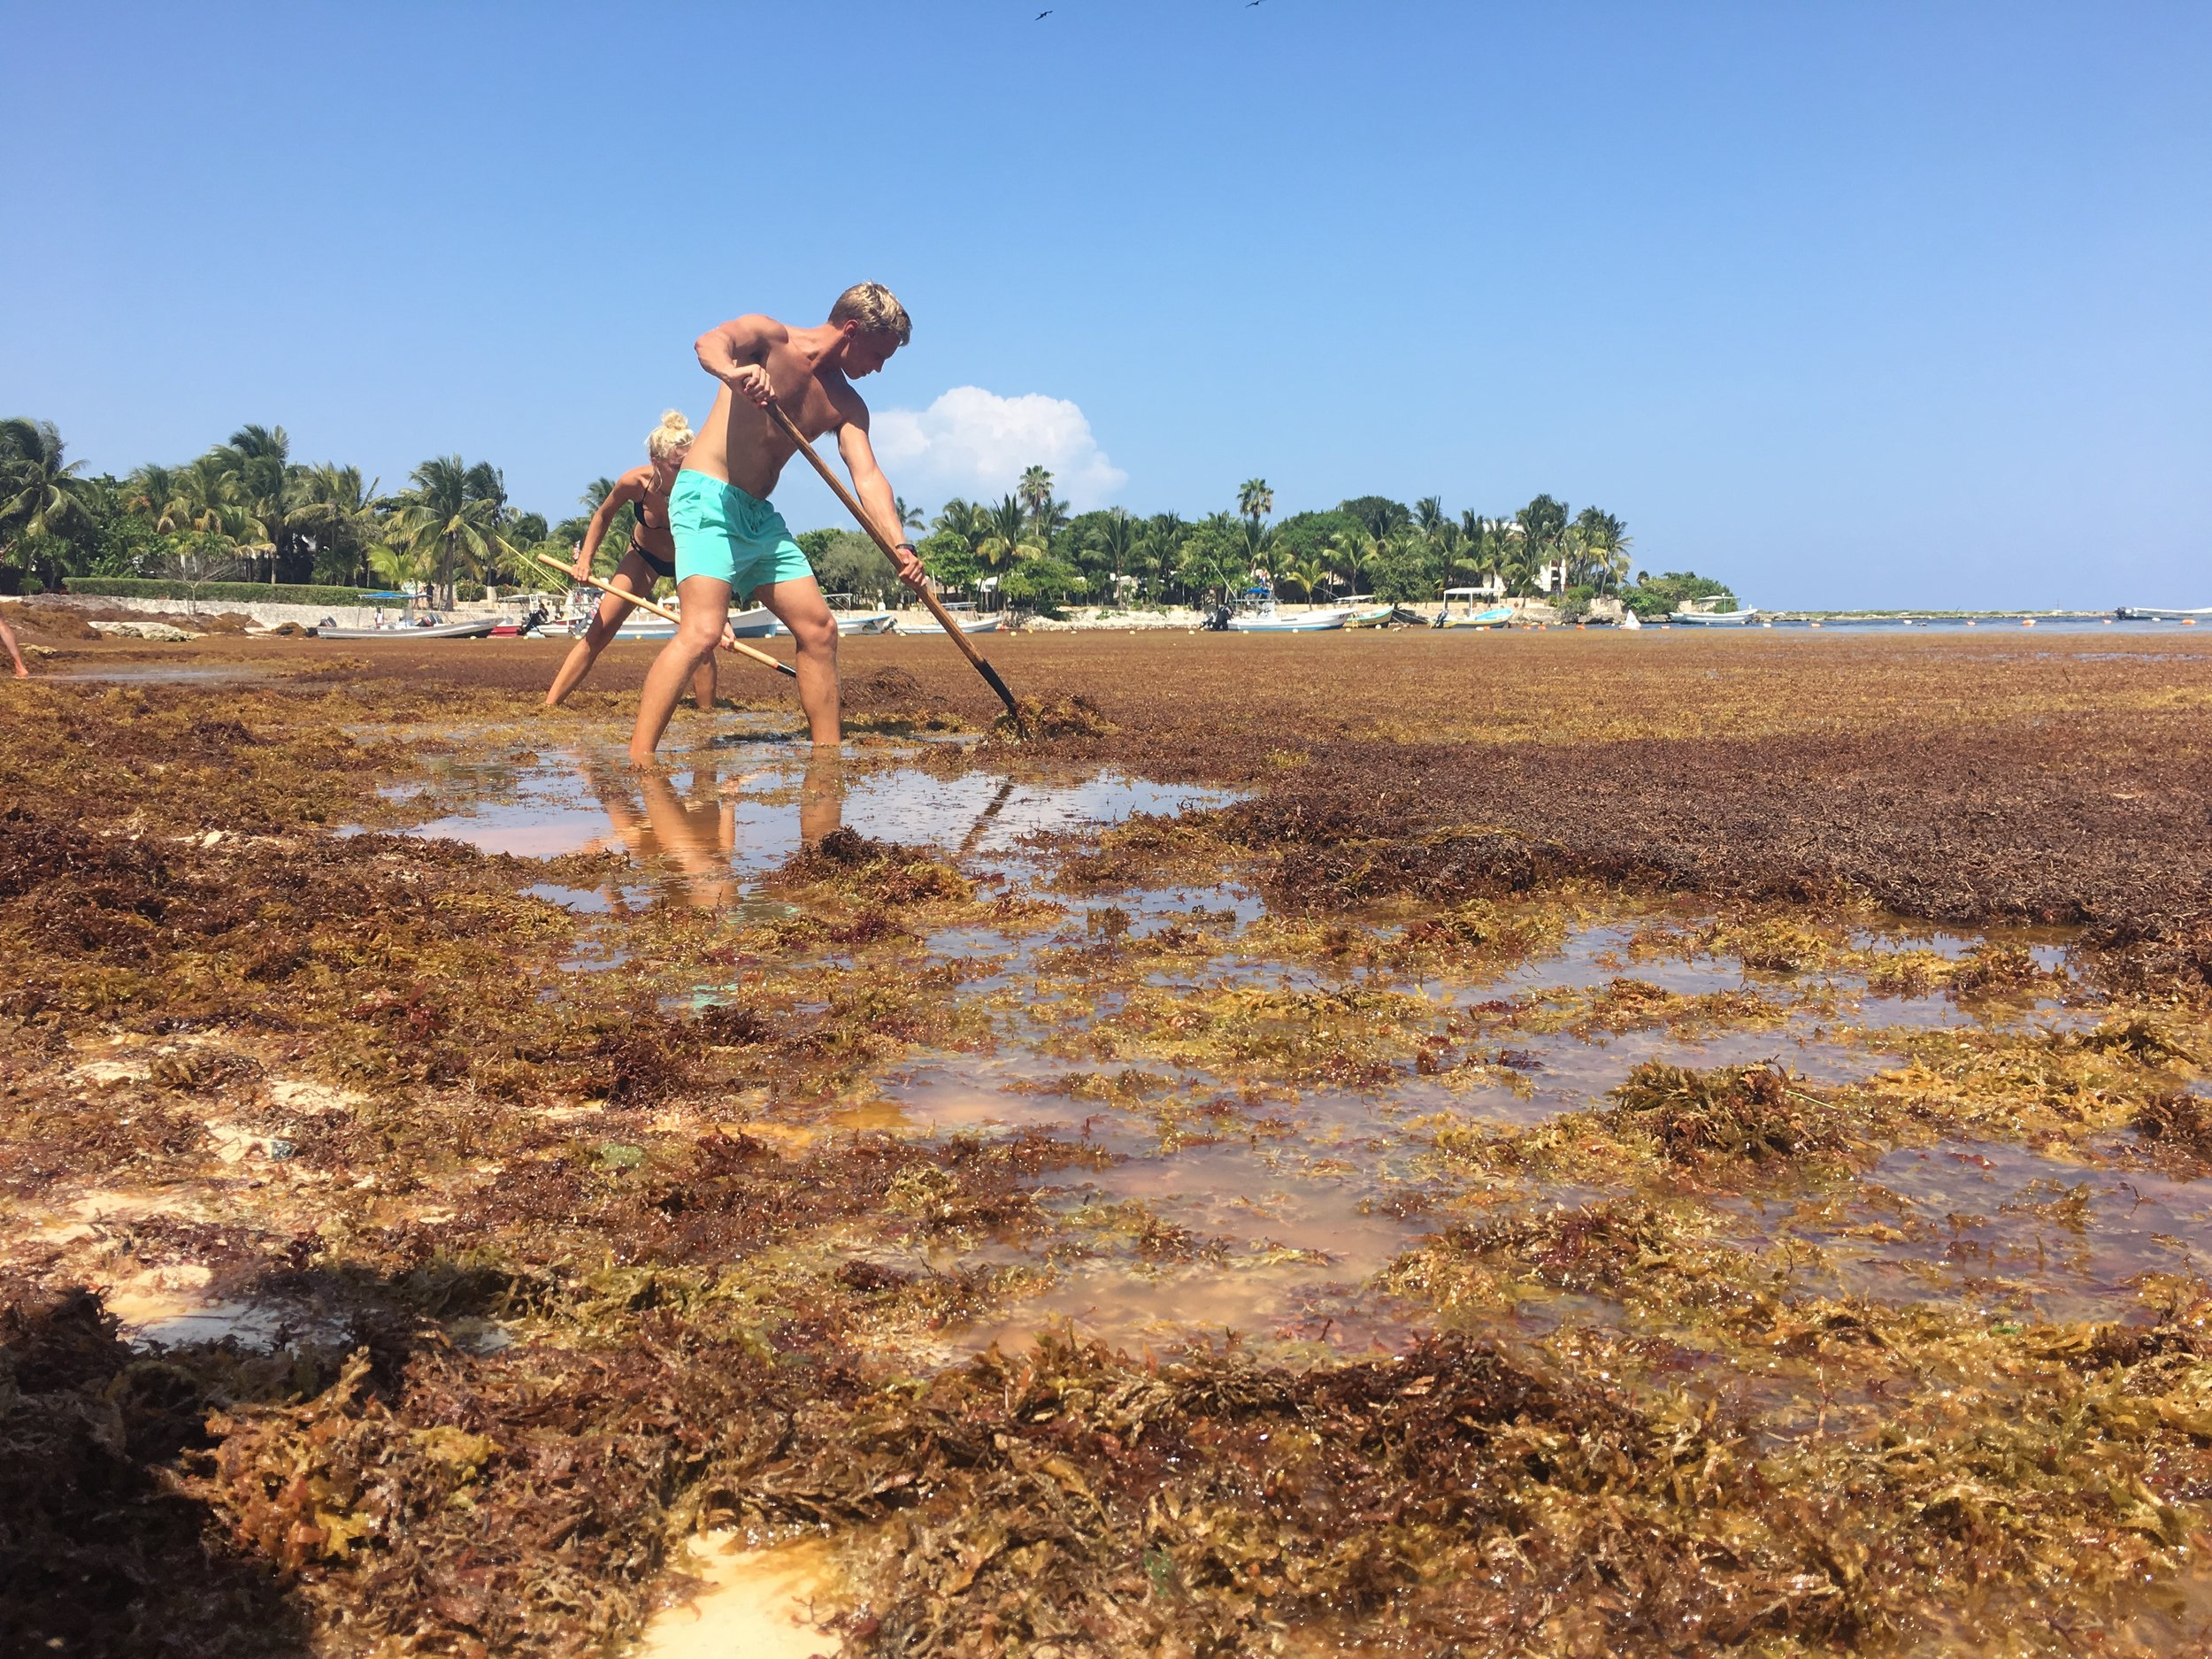 Volunteers make en effort to mitigate the effects of an influx of Sargassum, a brown algae that is currently washing ashore in masses across the Caribbean. Photo: Daniella Marston